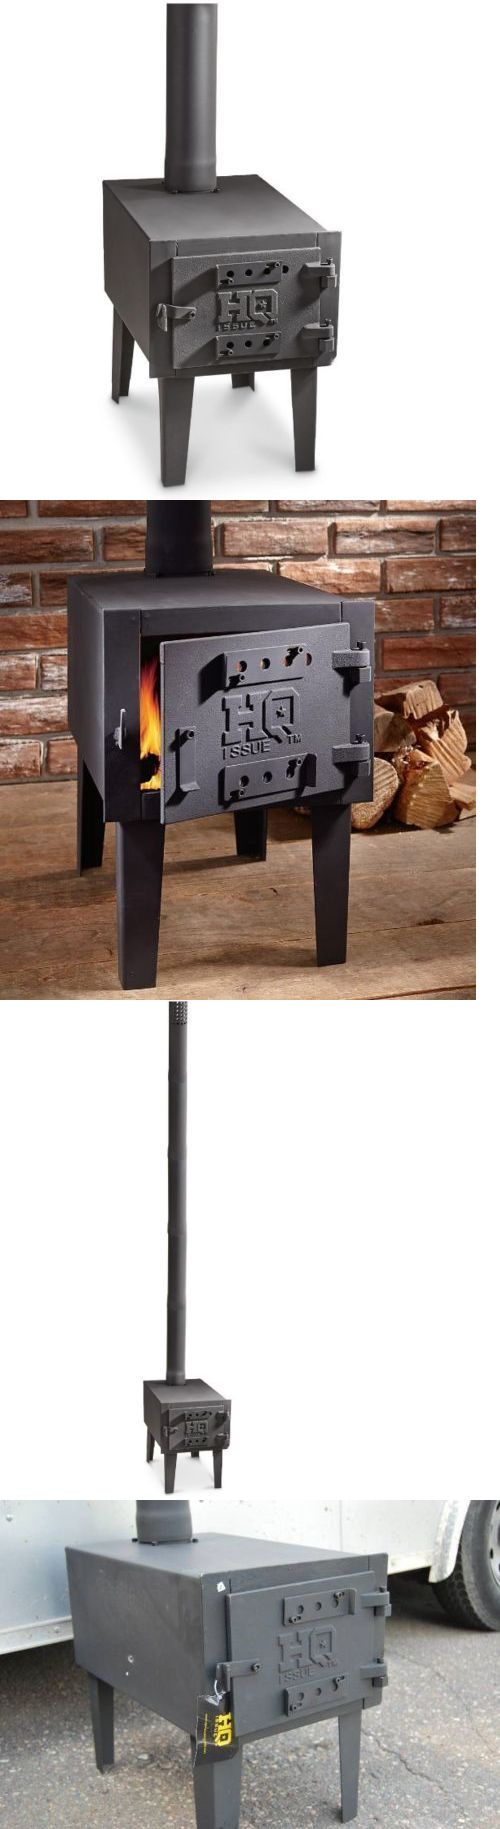 Camping Stoves 181386: Outdoor Wood Stove Camping Hiking Hunting Portable Heater Cook Tent Fireplace -> BUY IT NOW ONLY: $142.99 on eBay!